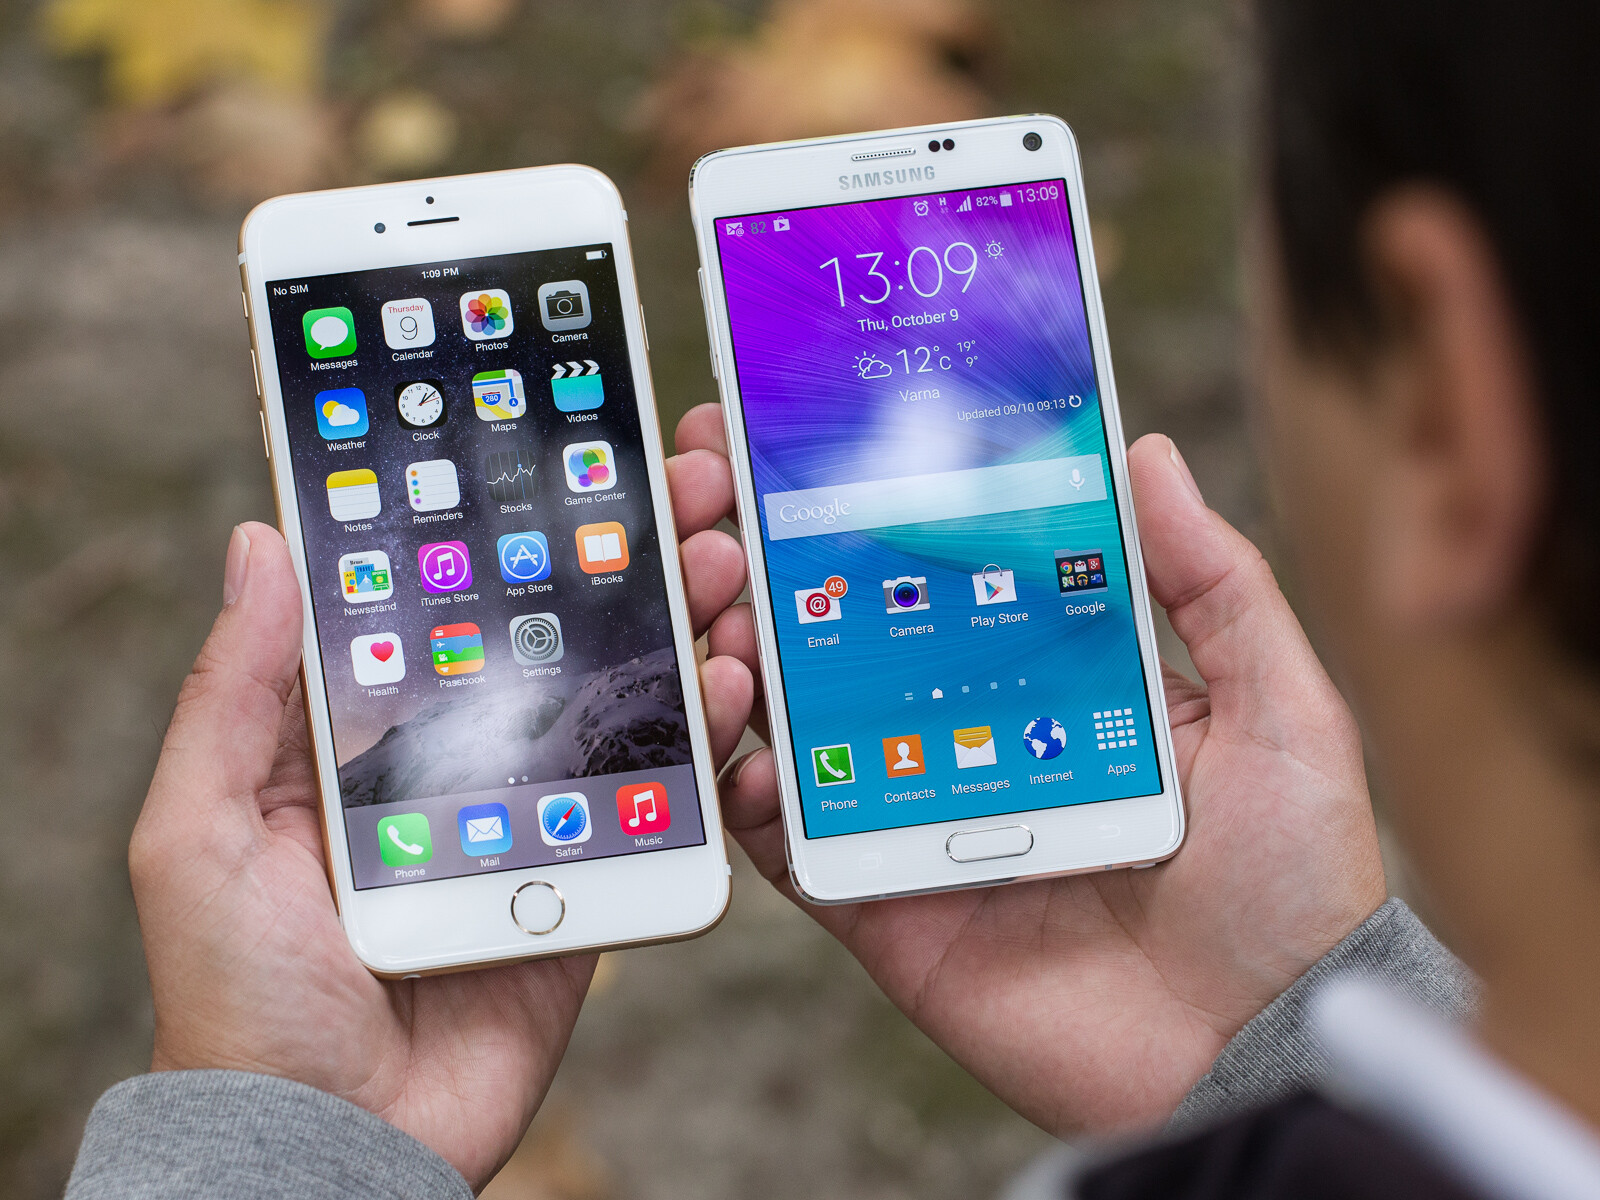 http://i-cdn.phonearena.com/images/reviews/166007-image/Samsung-Galaxy-Note-4-vs-Apple-iPhone-6-Plus-11.jpg